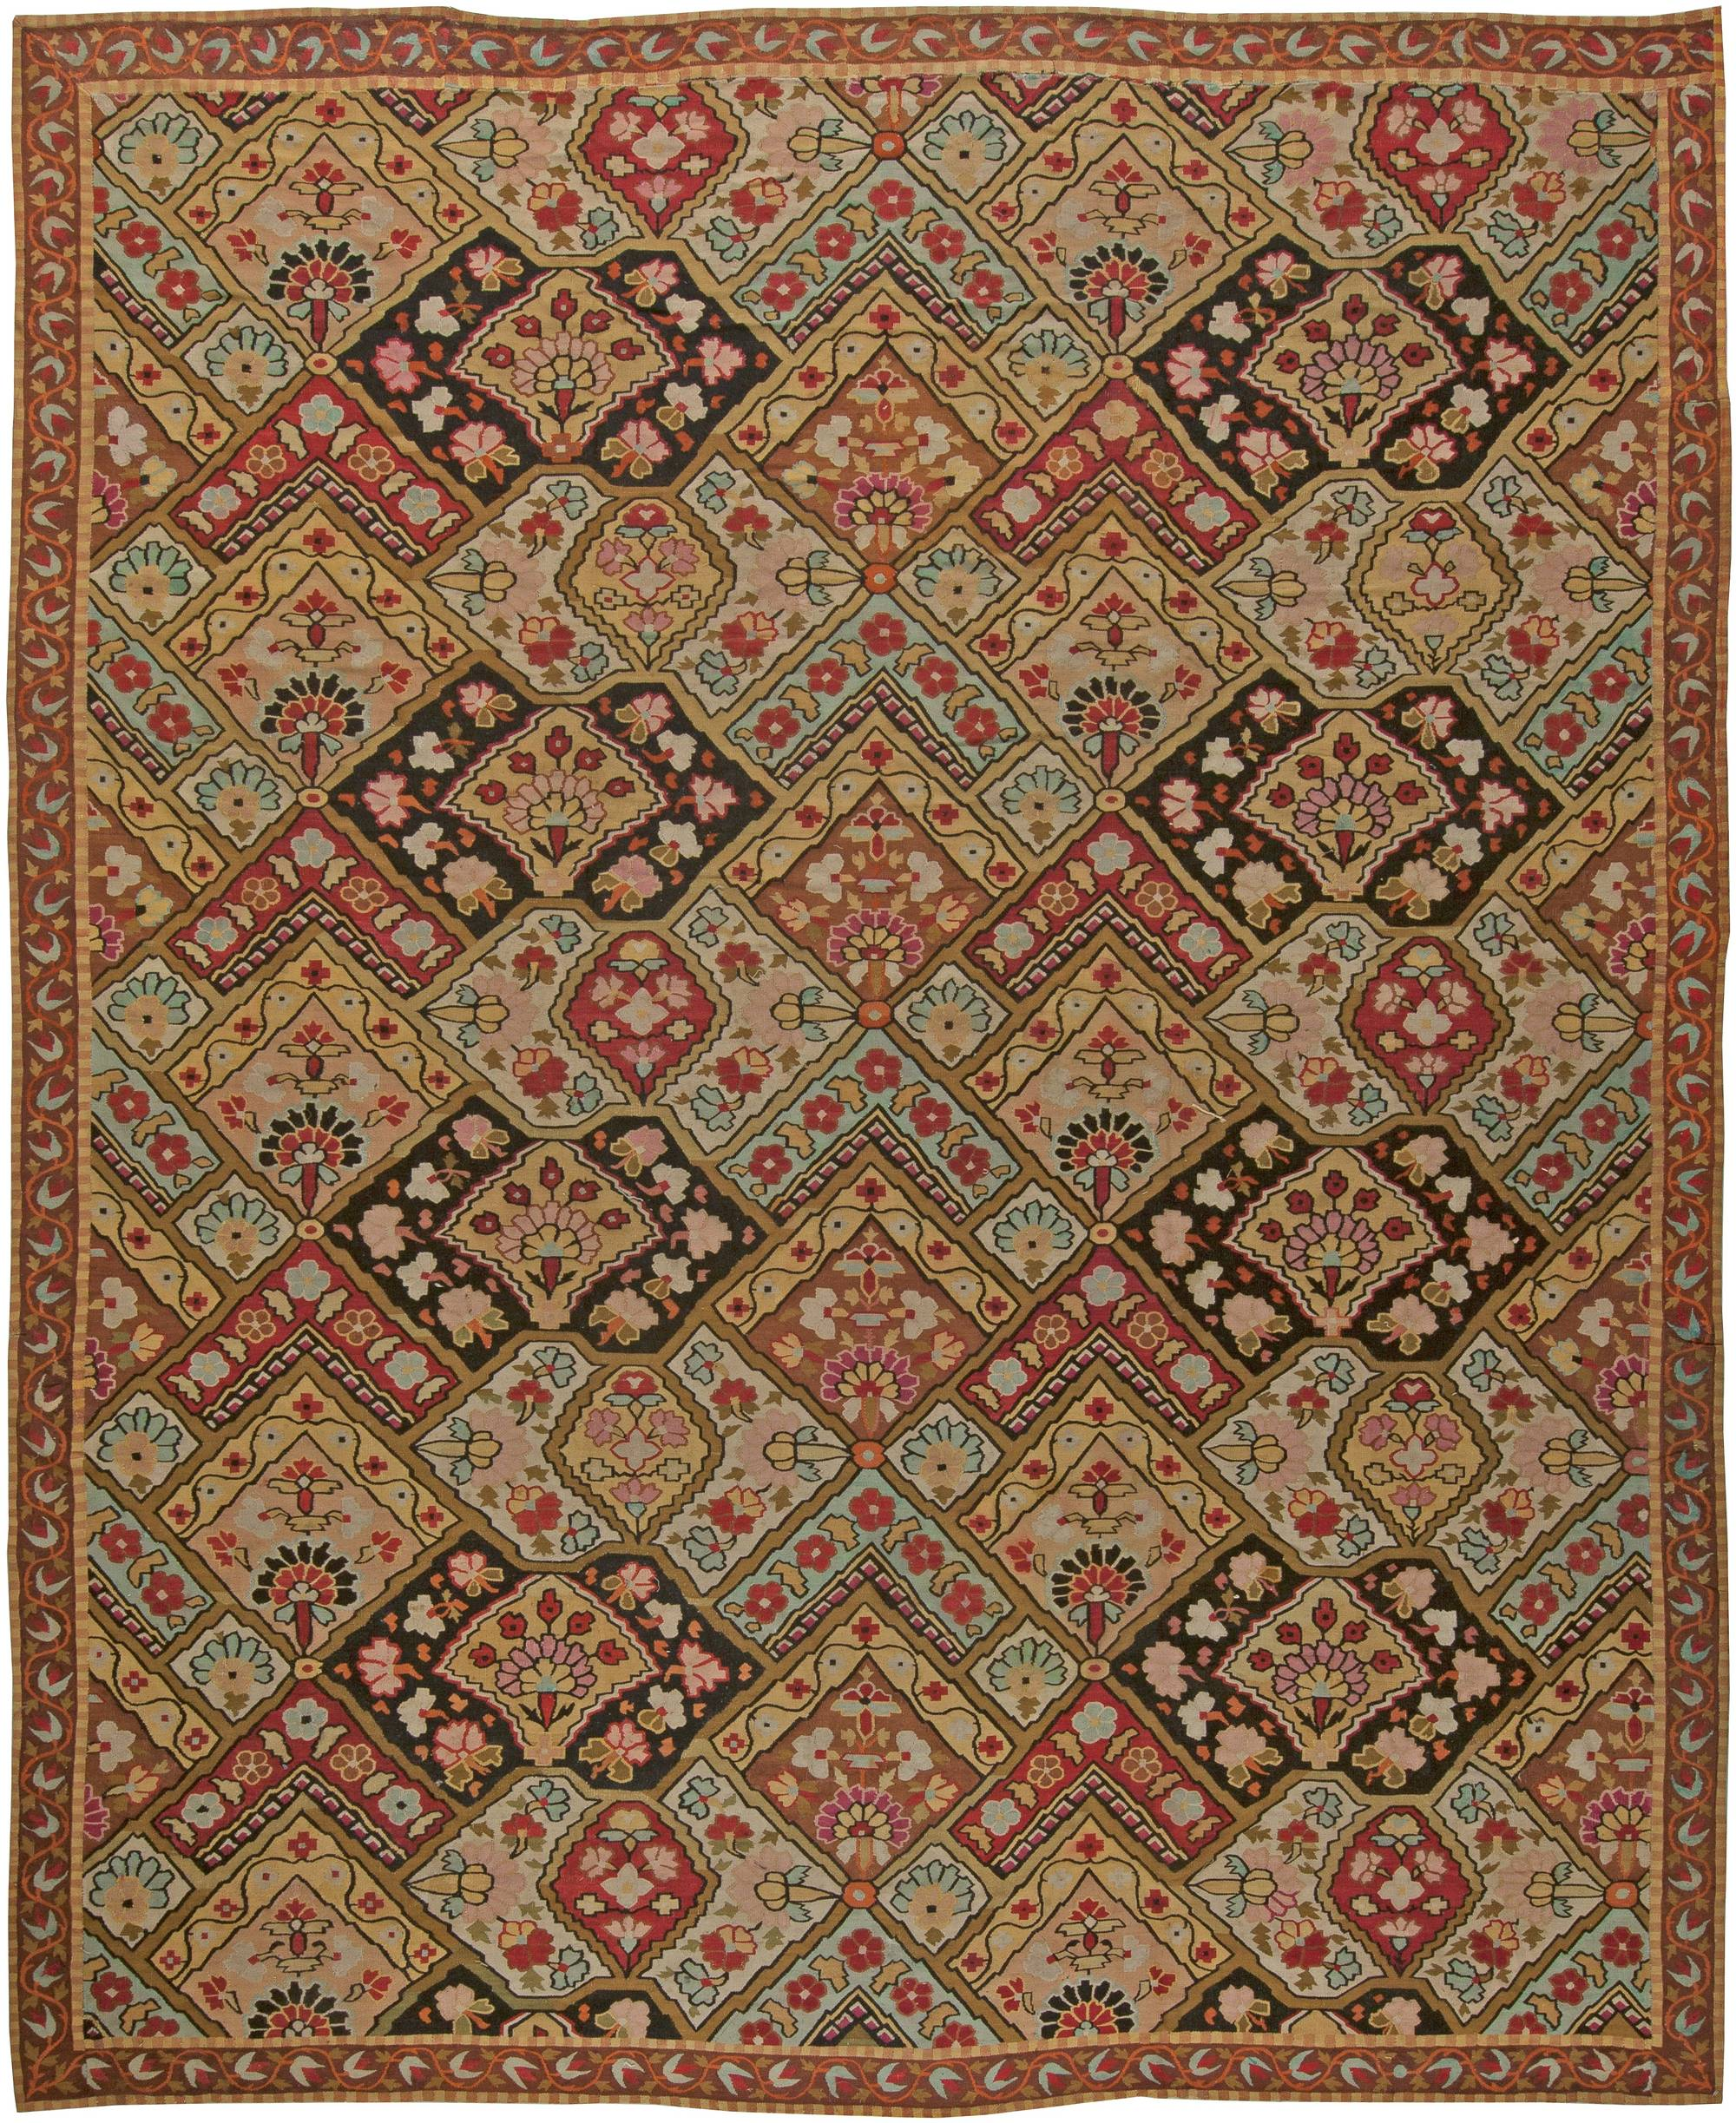 Antique French Aubusson Rug BB5657